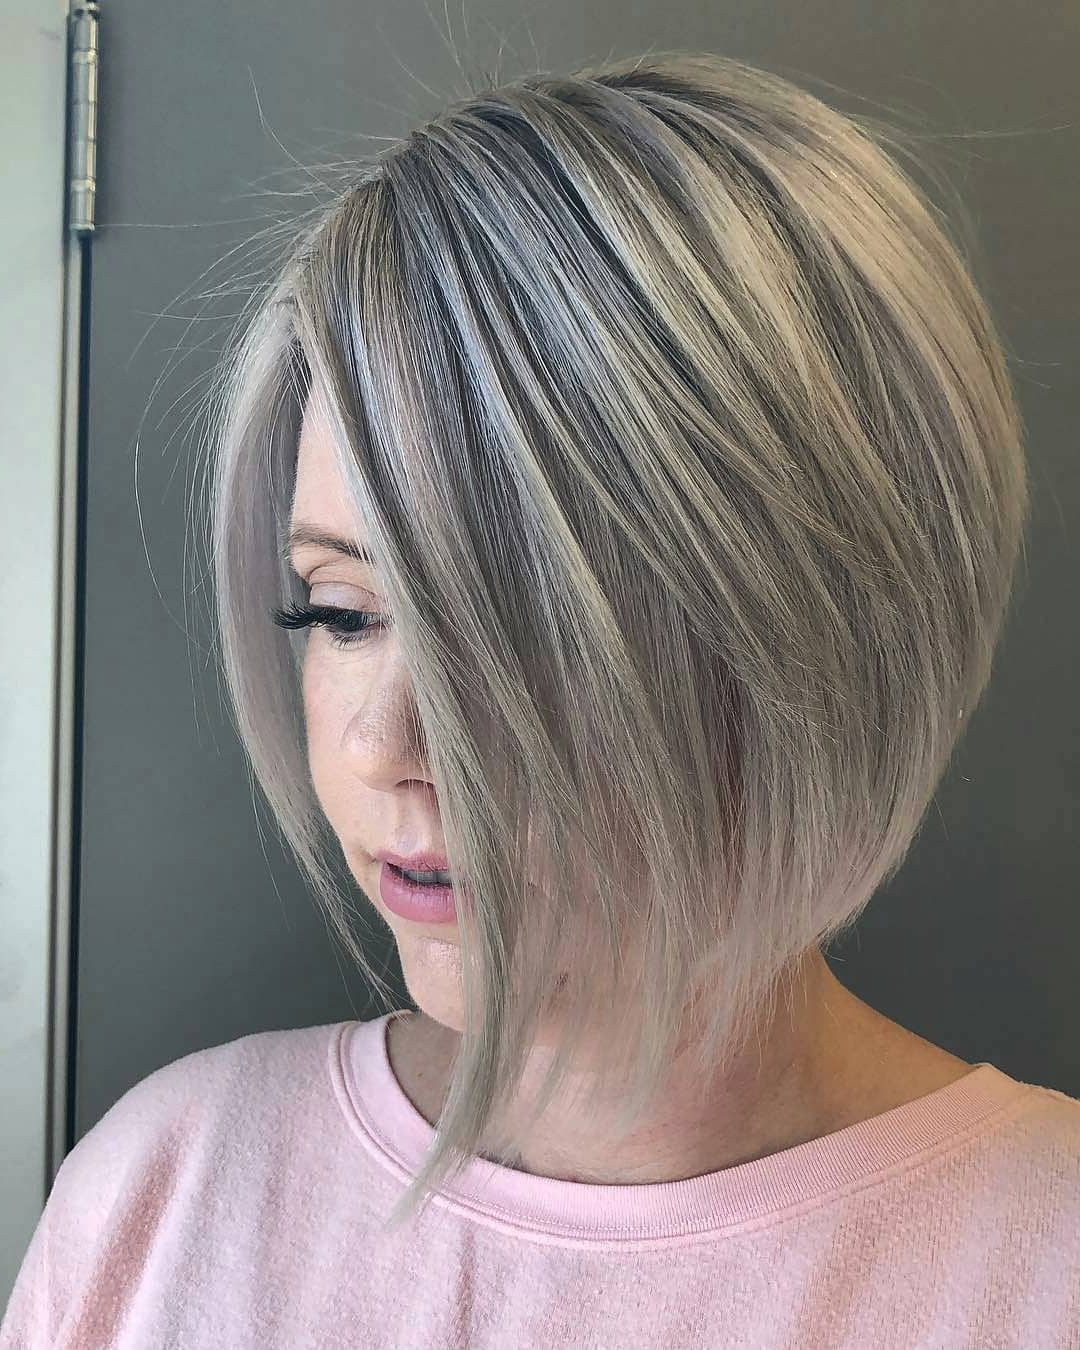 10 Simple Short Straight Bob Haircuts, Women Short Hairstyle Intended For Well Known Simple, Chic And Bobbed Hairstyles (View 9 of 20)